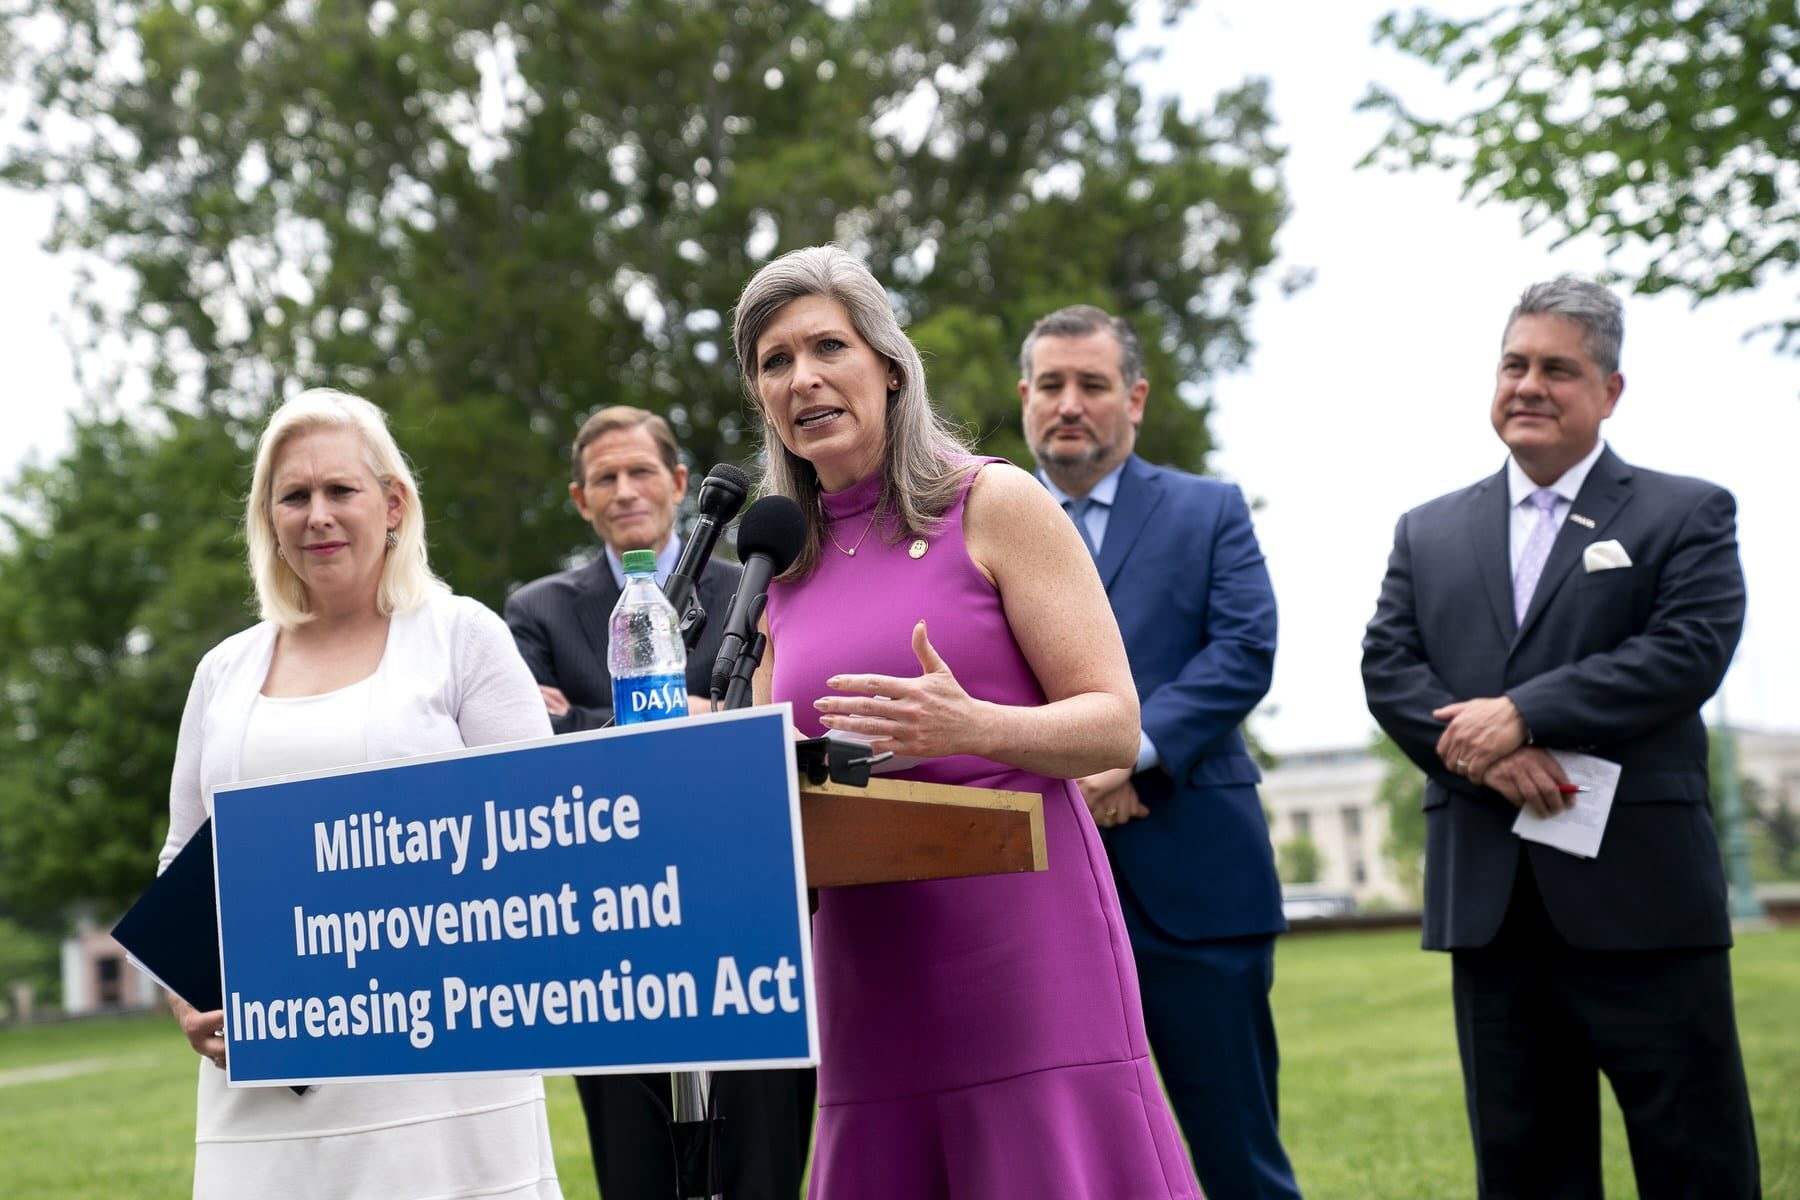 U.S. Sen. Joni Ernst (R-IA) (C), and other members of Congress, speaks during a news conference outside the U.S. Capitol.